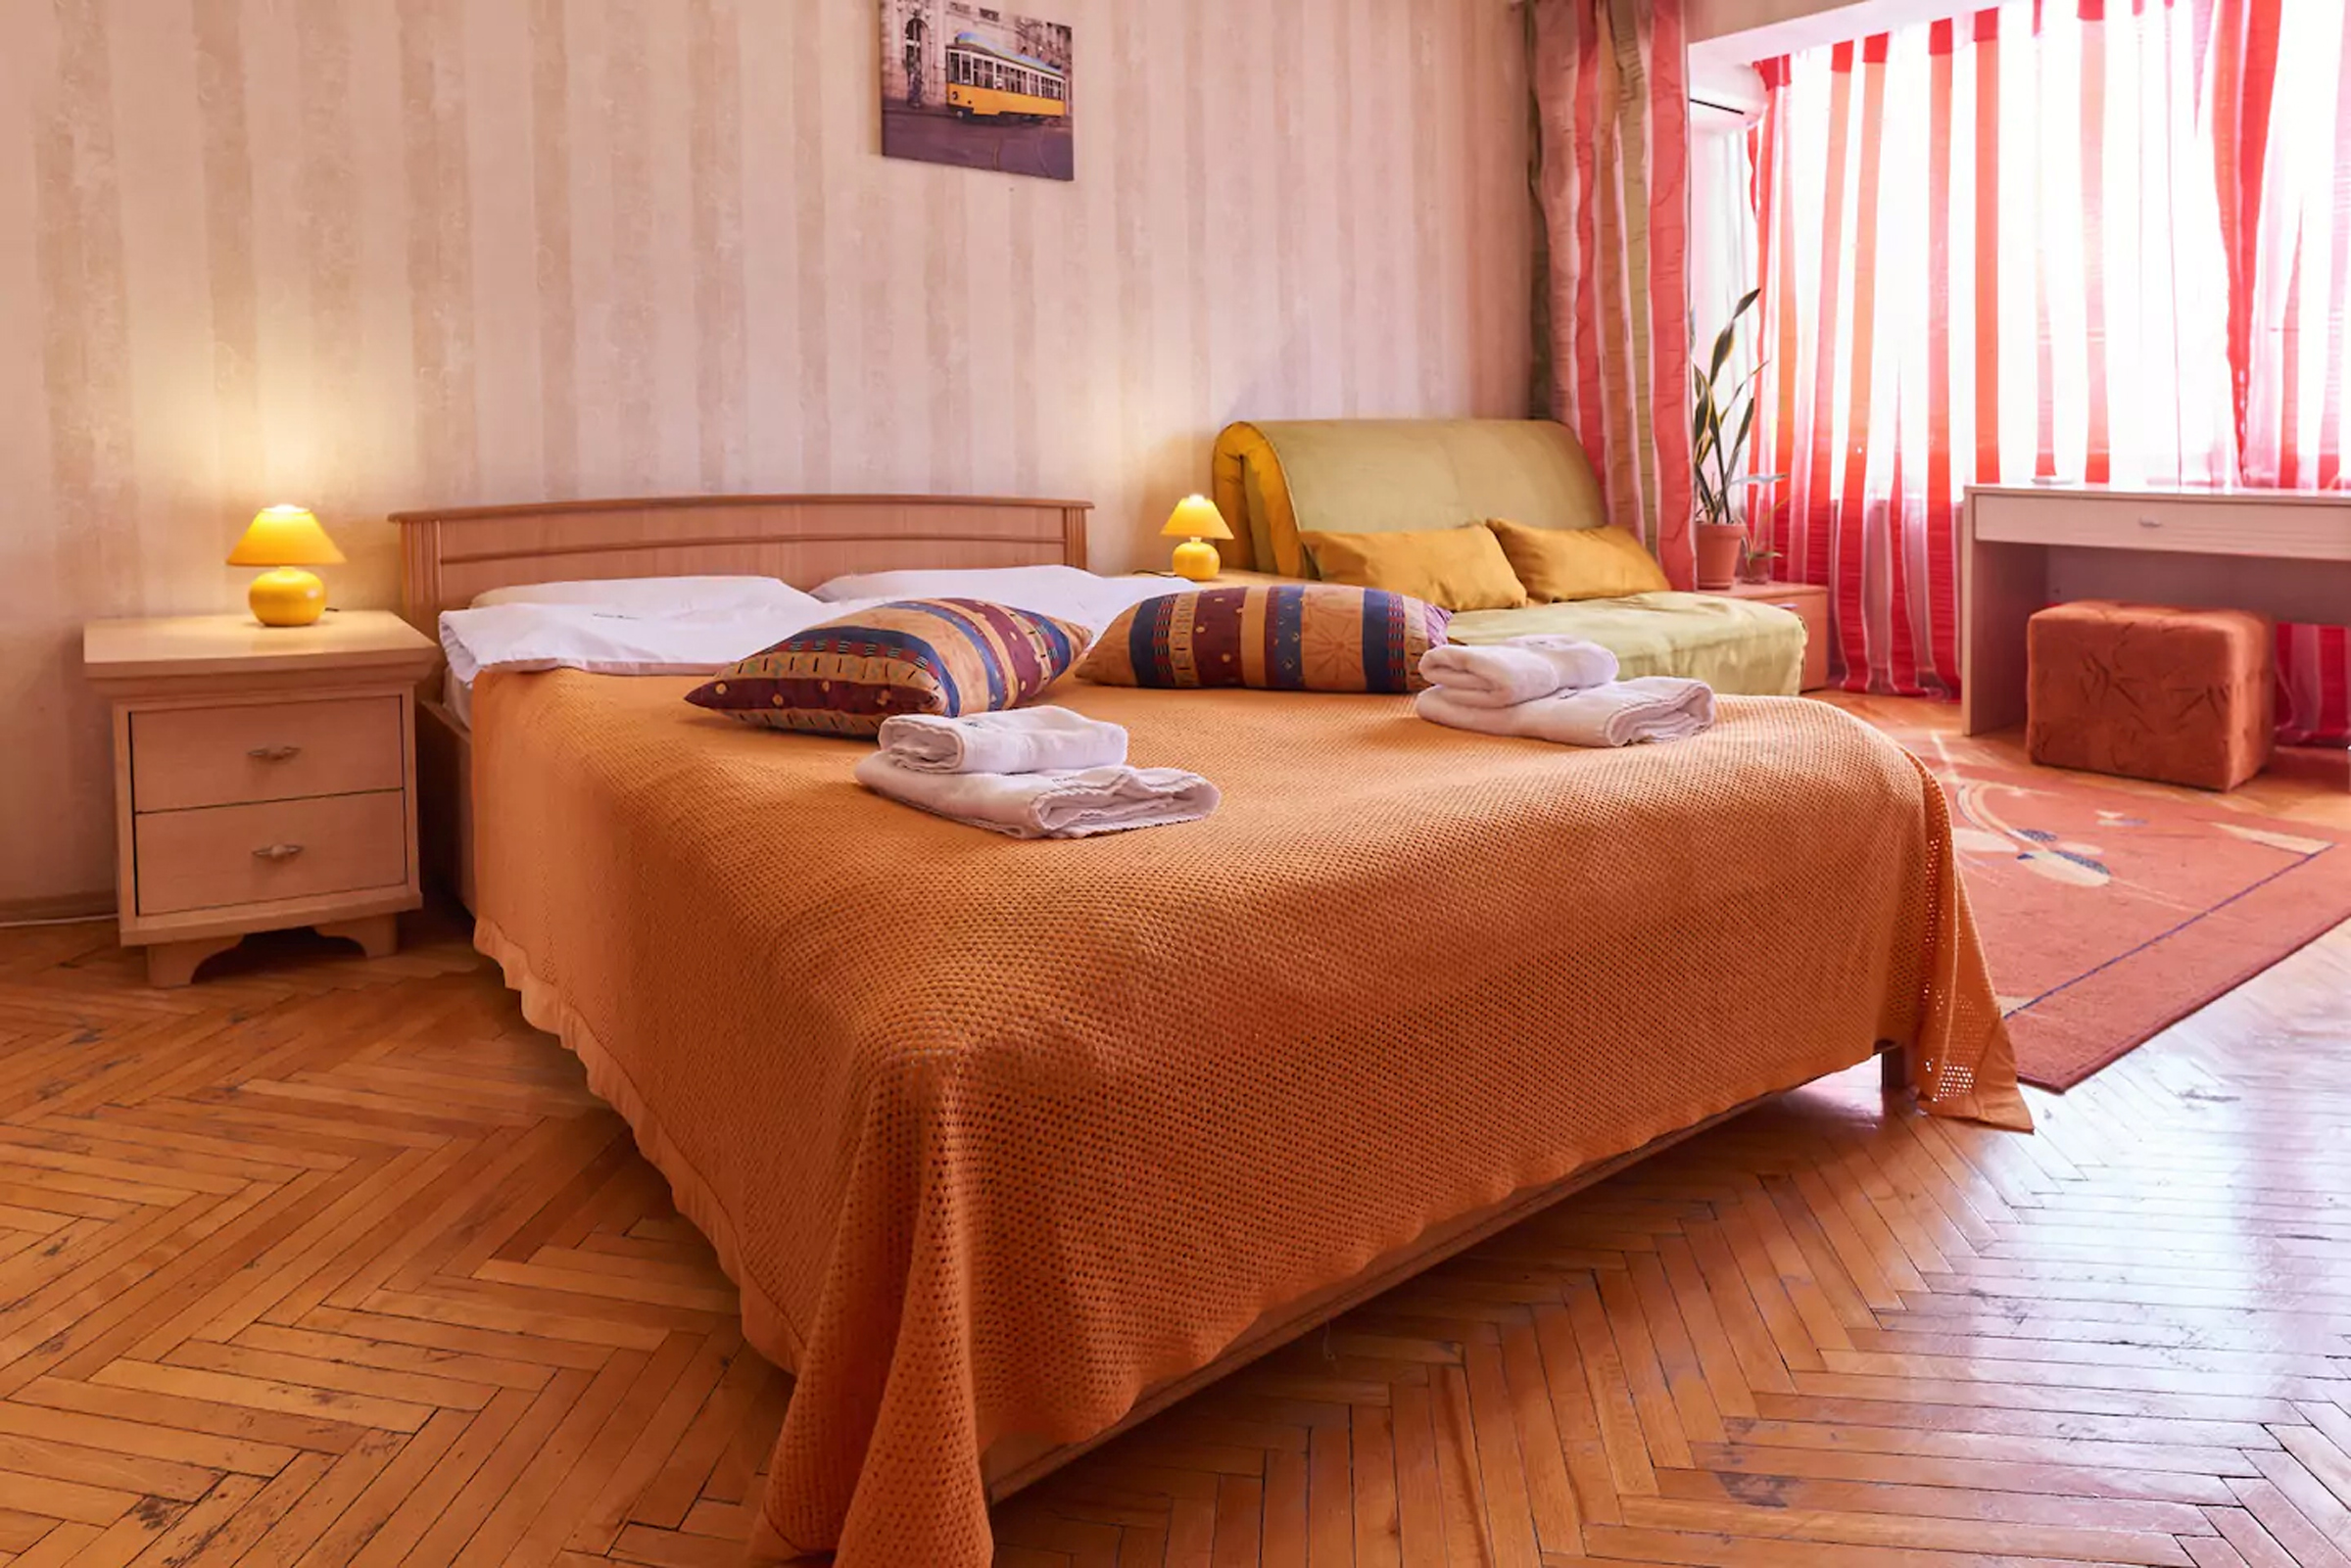 Apartment for rent in Kiev Raisy Okipnoy 7